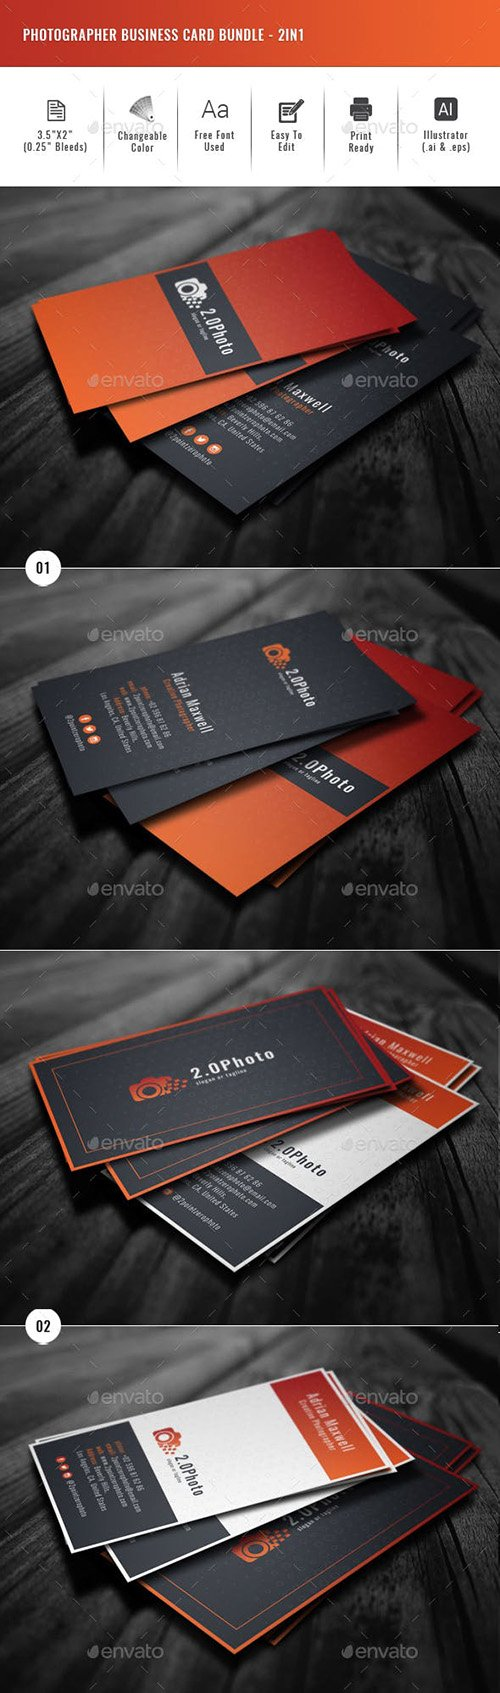 20 creative business card templates colorful unique